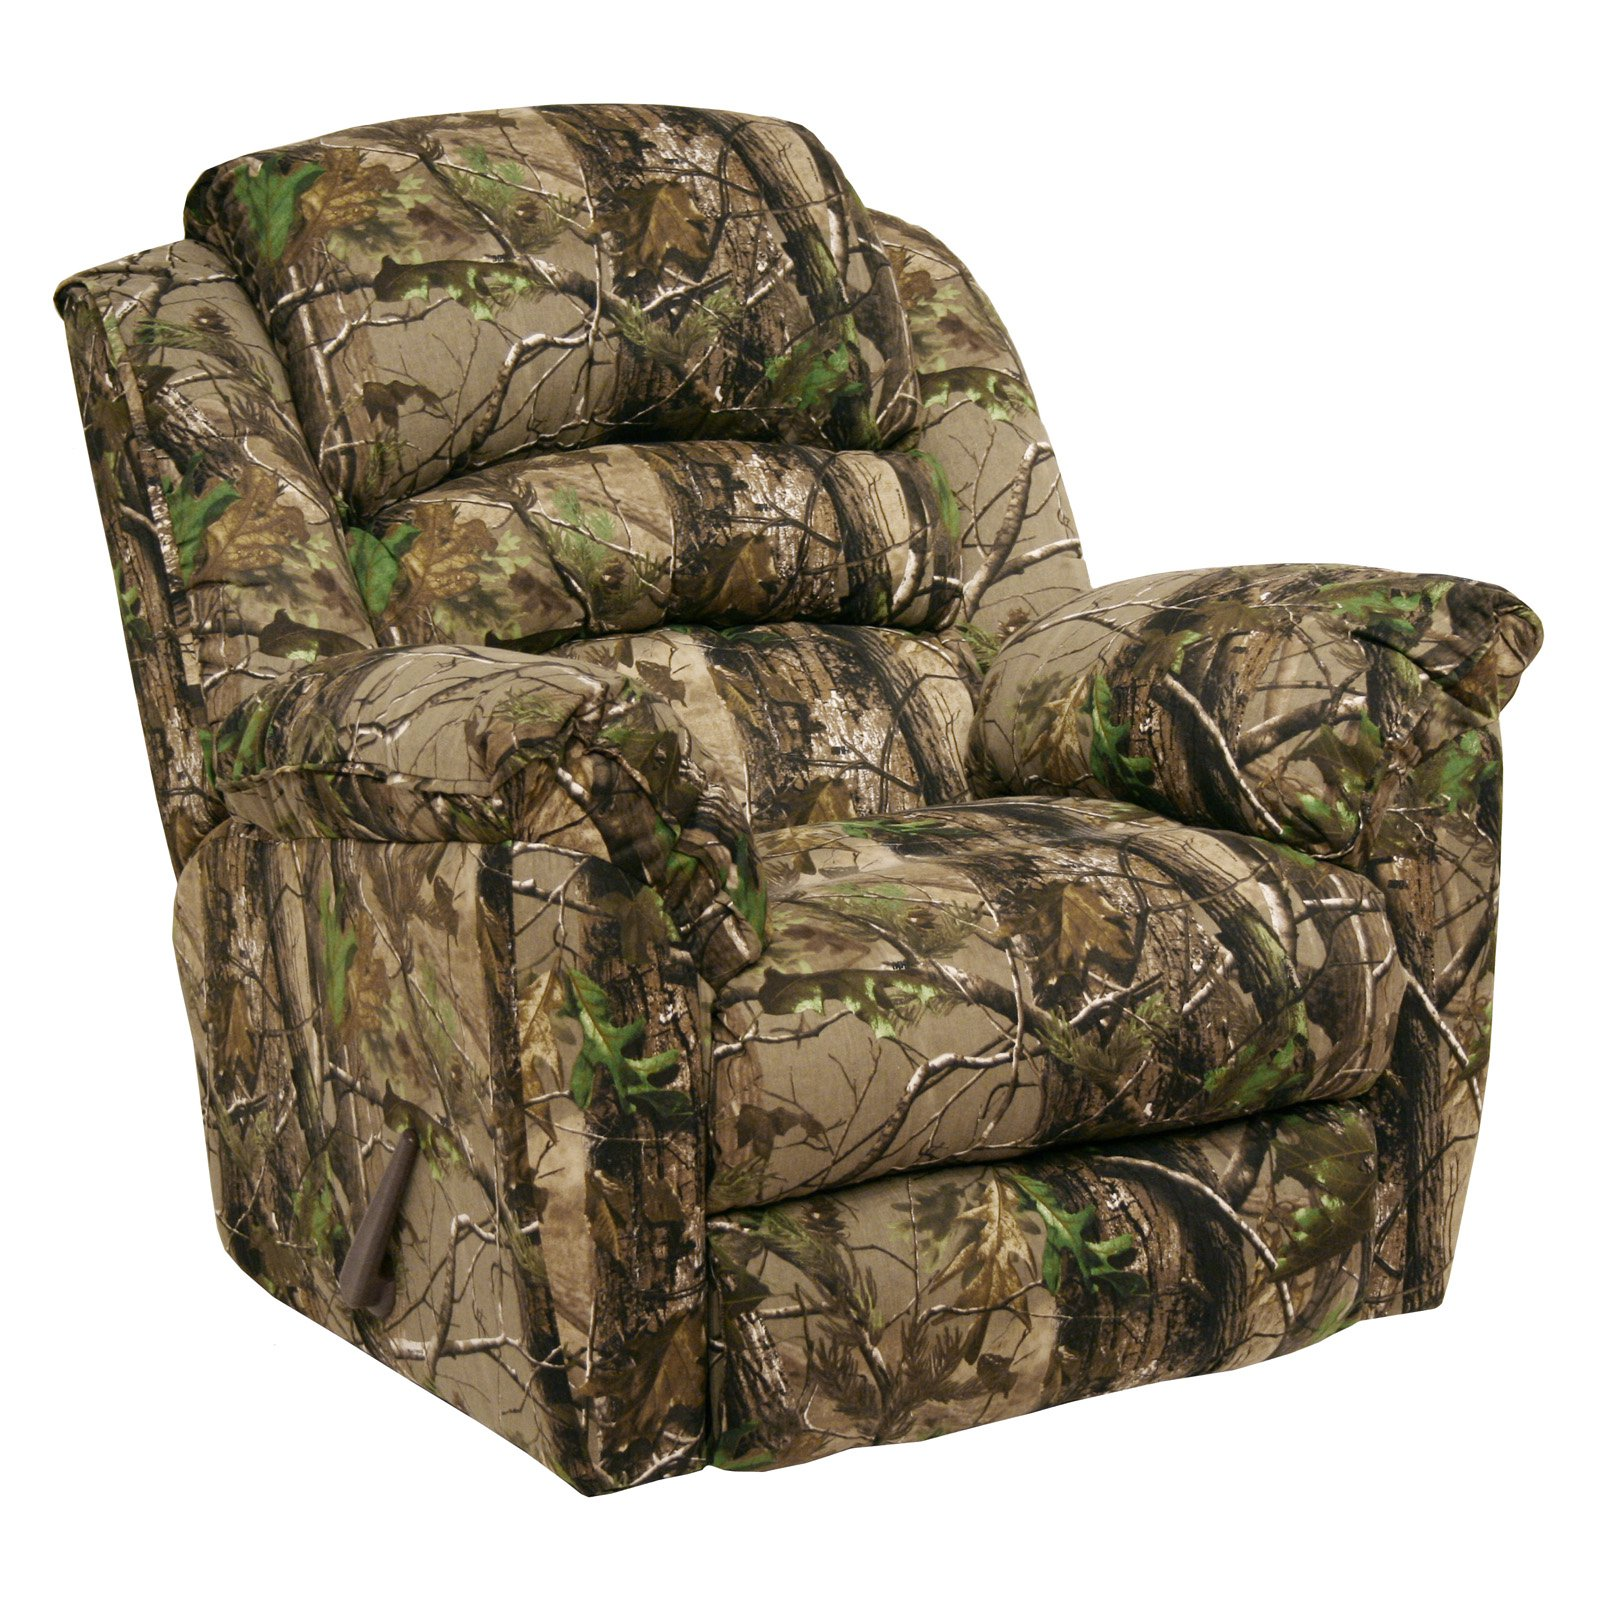 Catnapper High Roller AP Green Realtree Camouflage Chaise Rocker Recliner